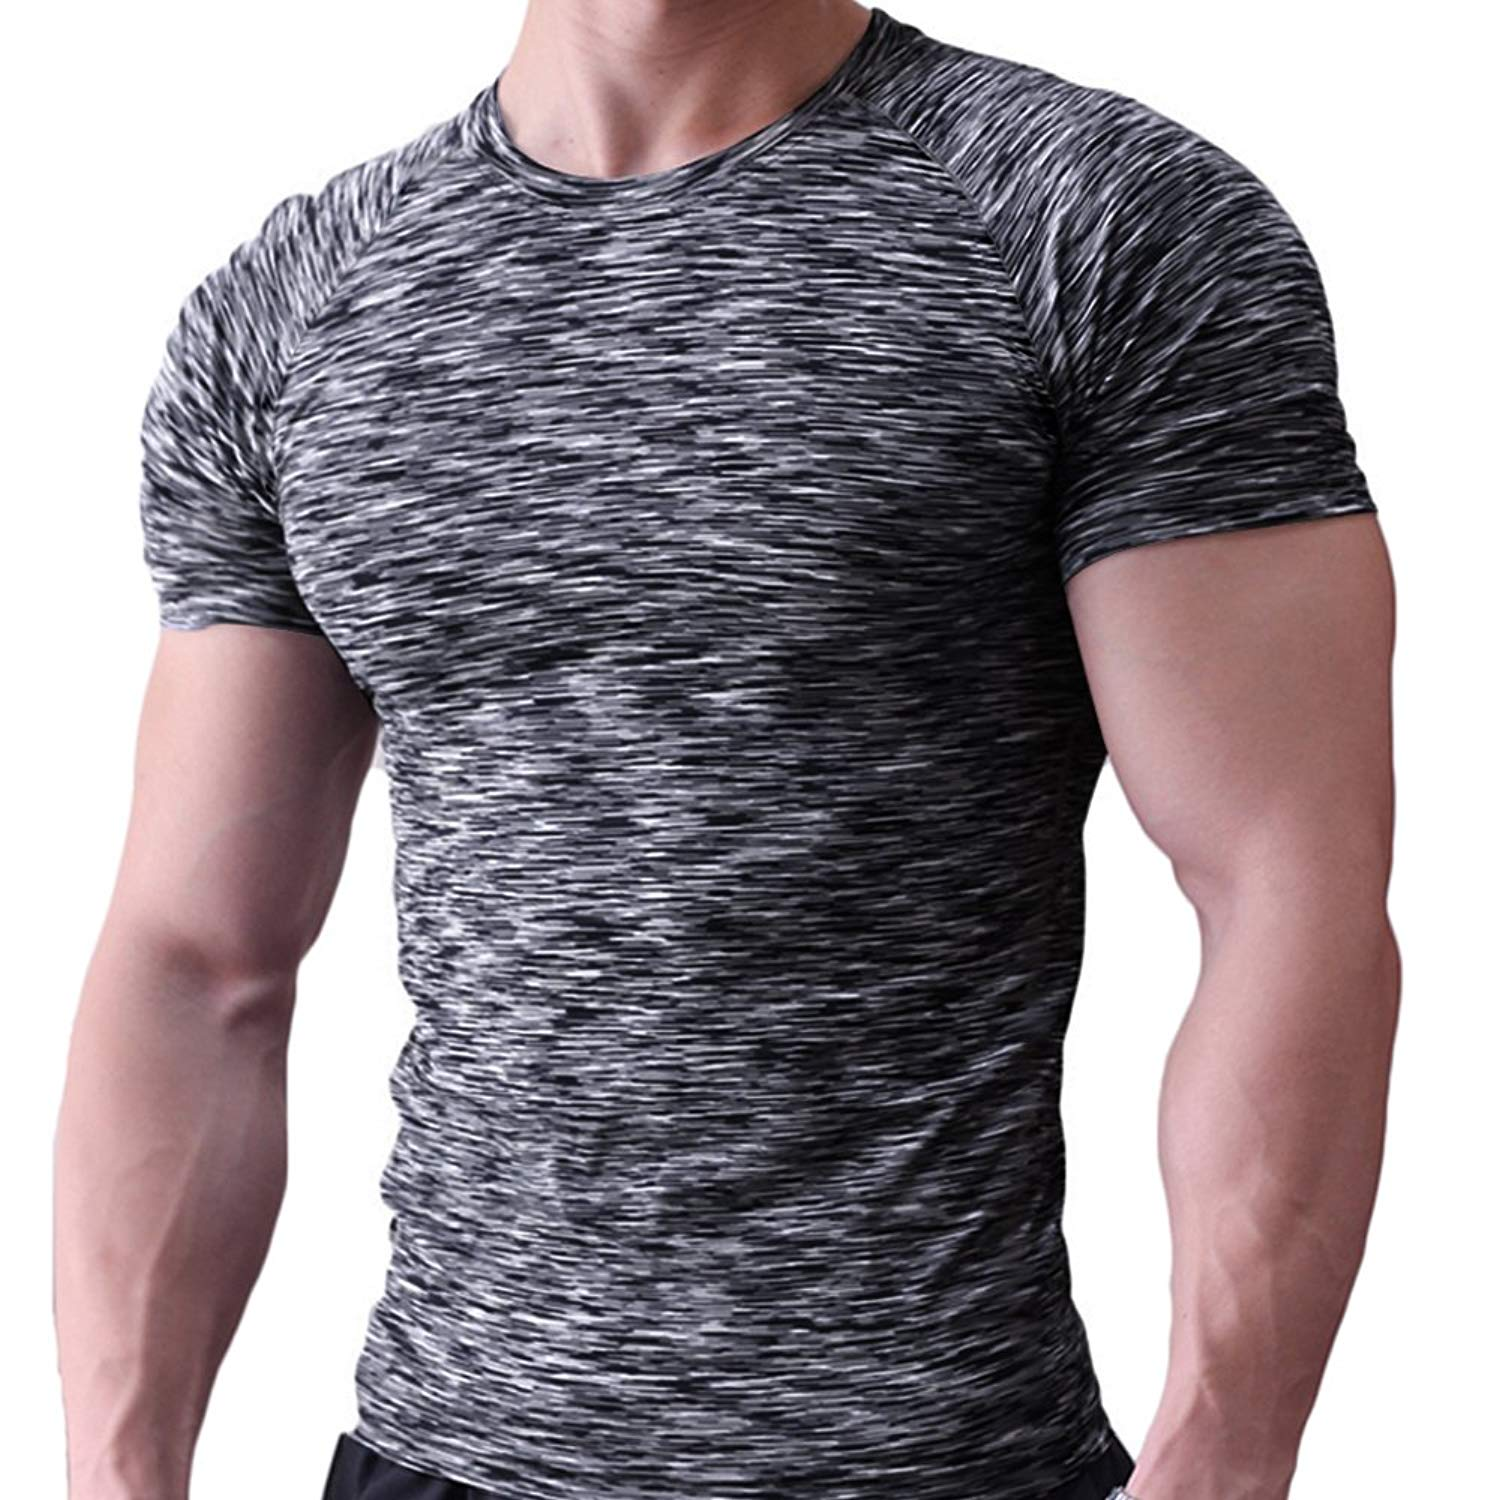 062c559409e Get Quotations · MUSCLE ALIVE Mens Tight T Shirts Crew-Neck Short Sleeve  Workout Muscle Compression Tees